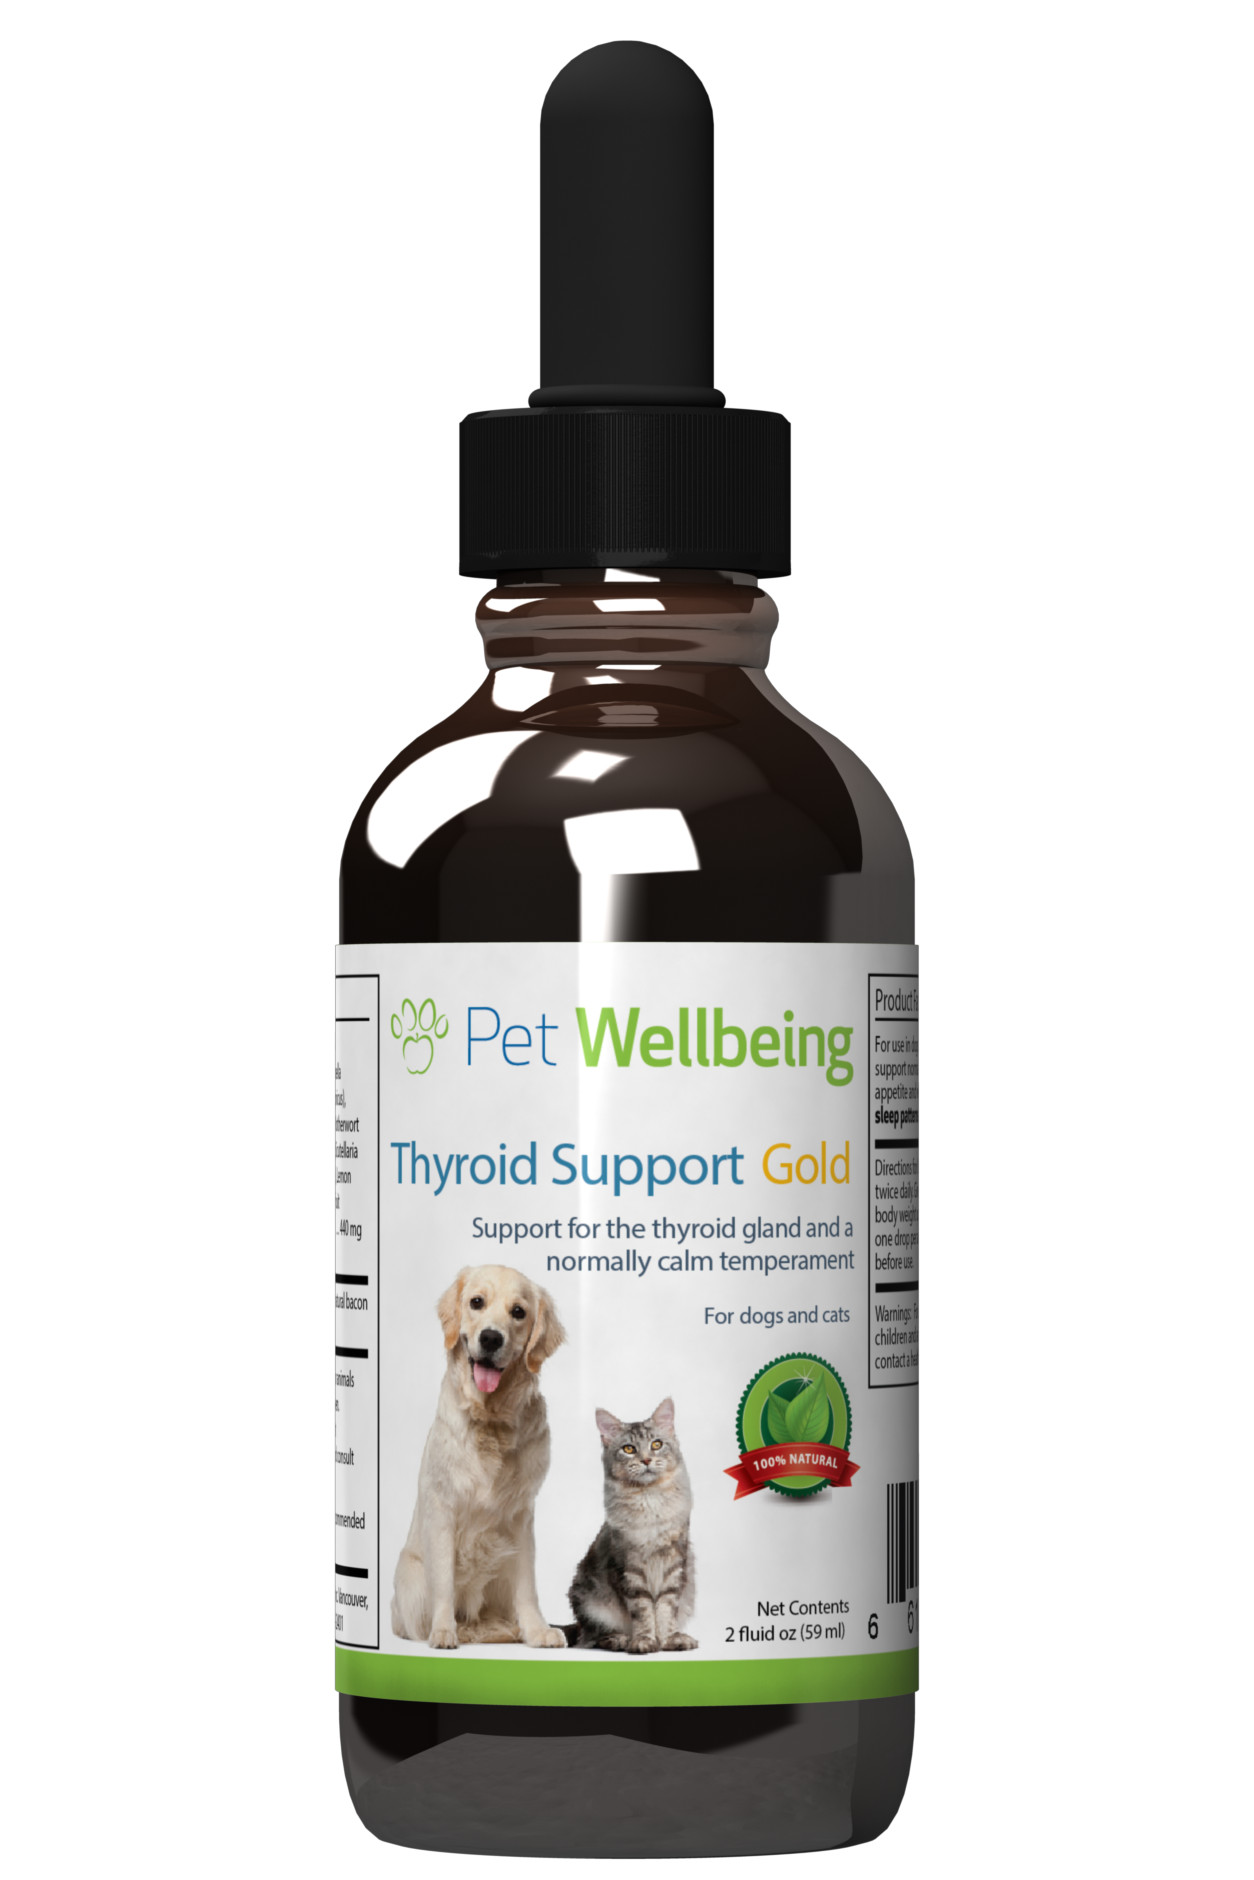 Thyroid Support Gold, 2oz, for Dogs & Cats